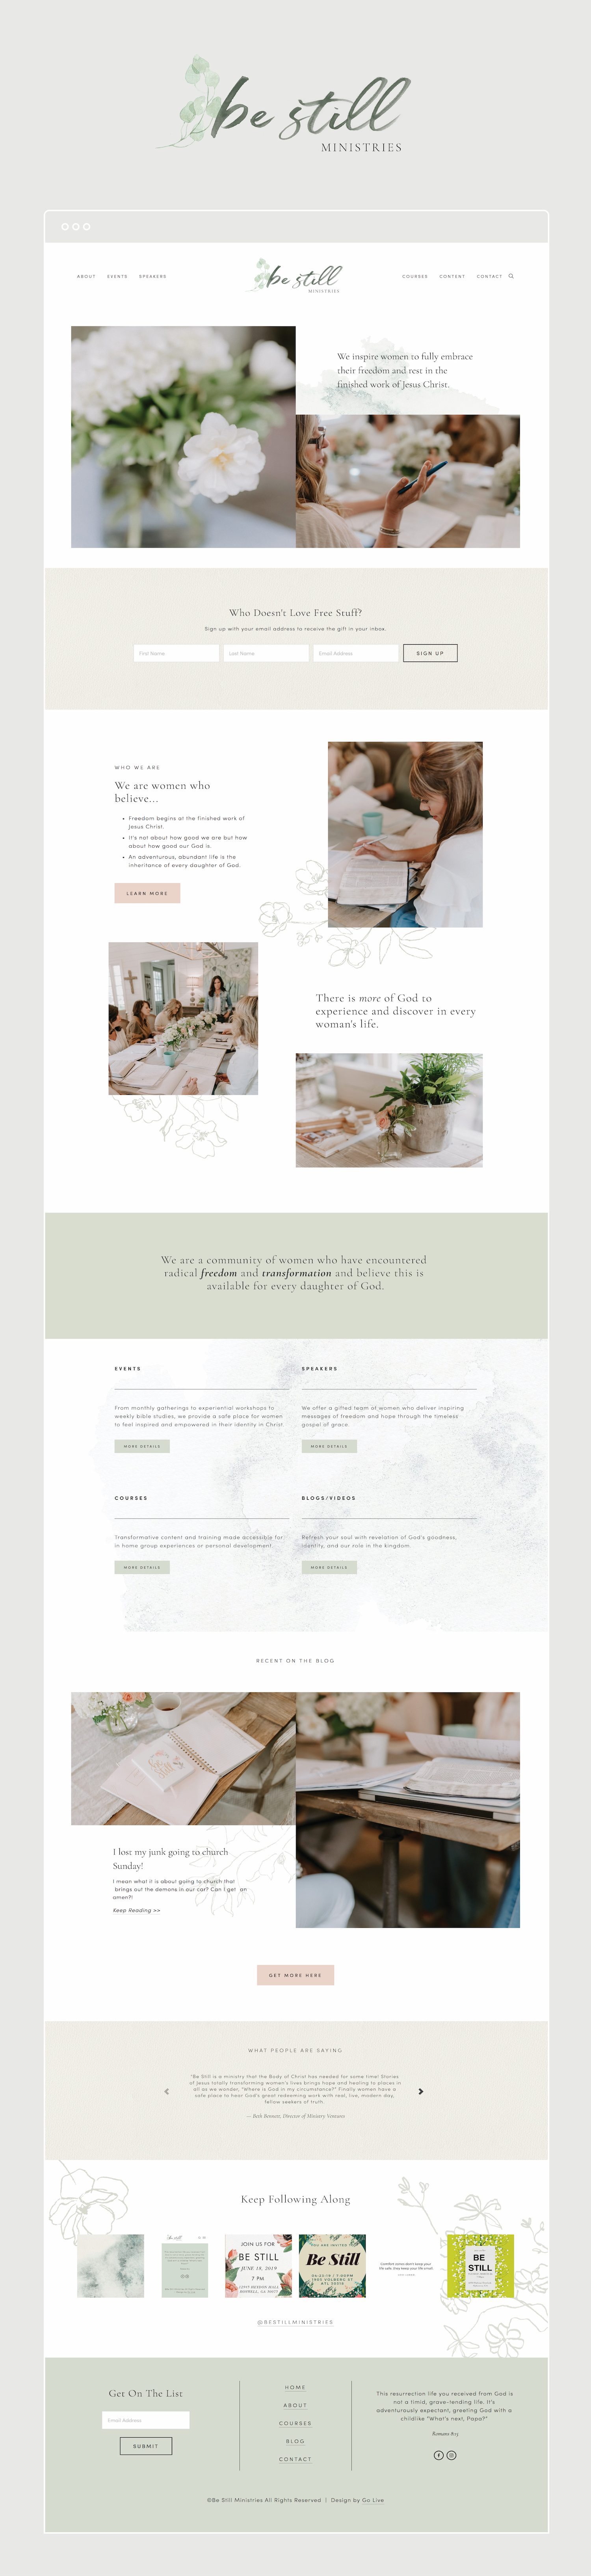 Earthy, Organic, Timeless Squarespace Website Design For Ministry | By GoLive